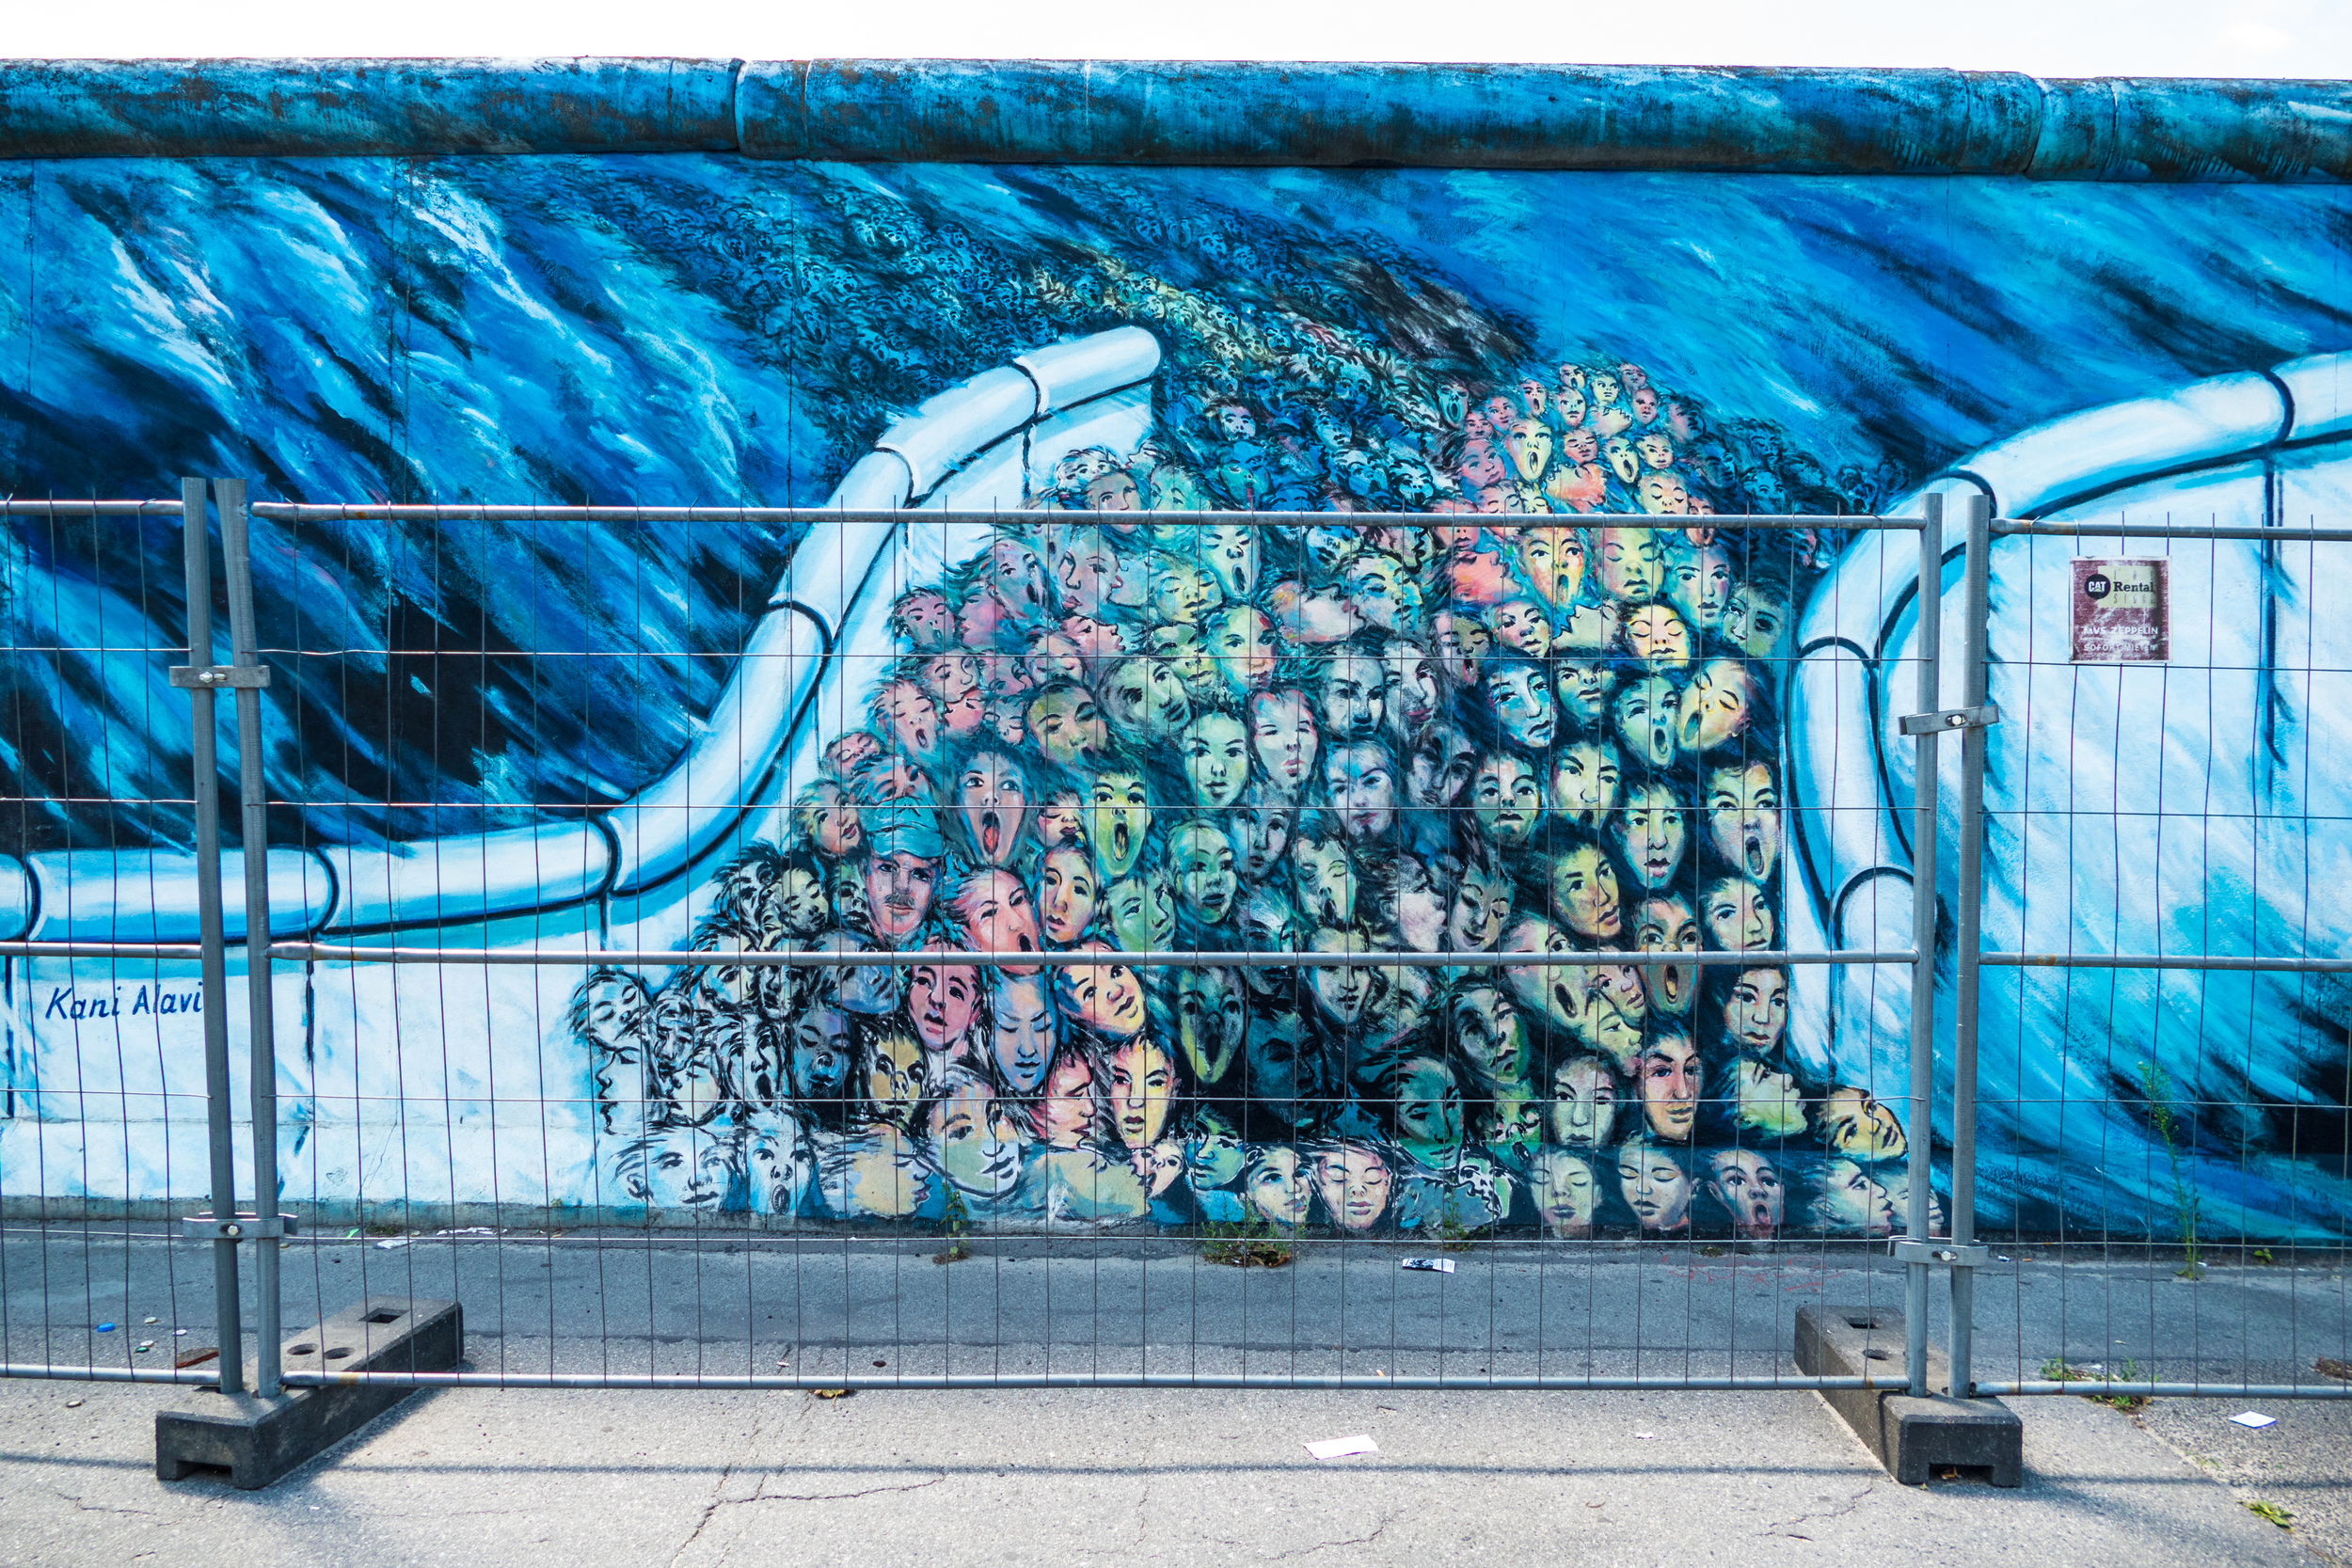 East Side Gallery picture of escape through the Berlin Wall (but trapped behind the barriers).